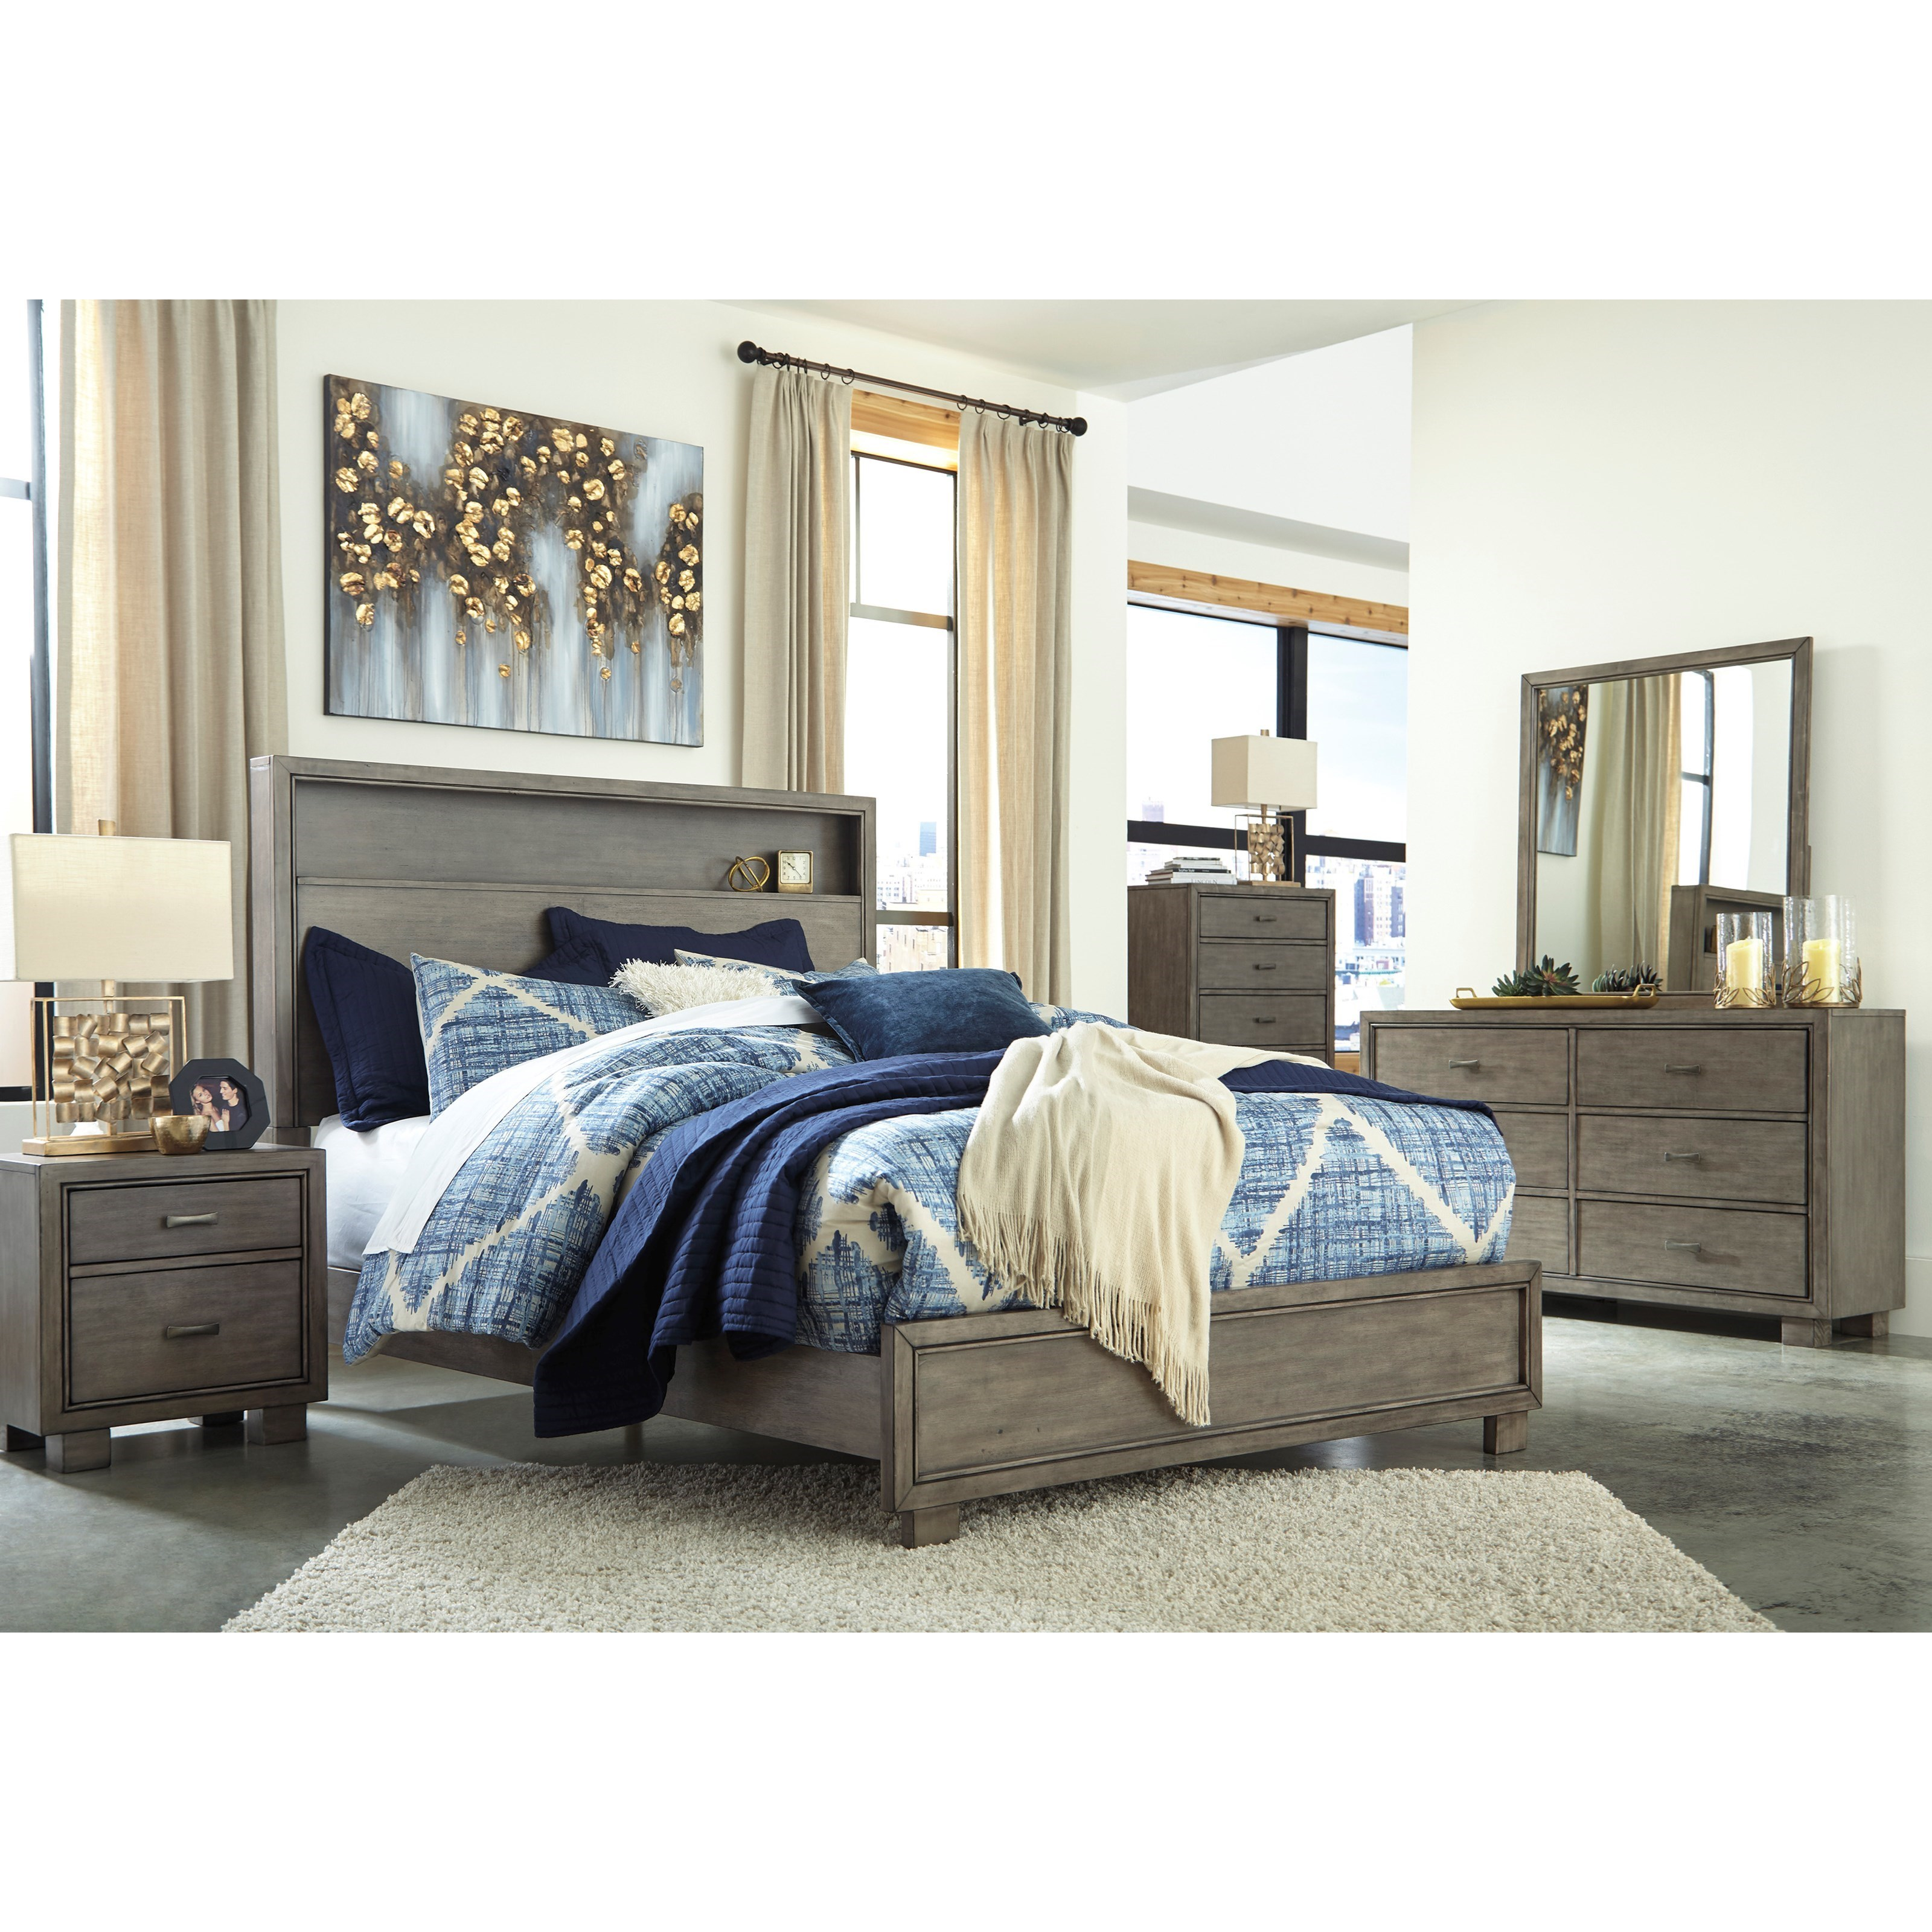 Arnett King Bedroom Group by Signature Design by Ashley at Pedigo Furniture